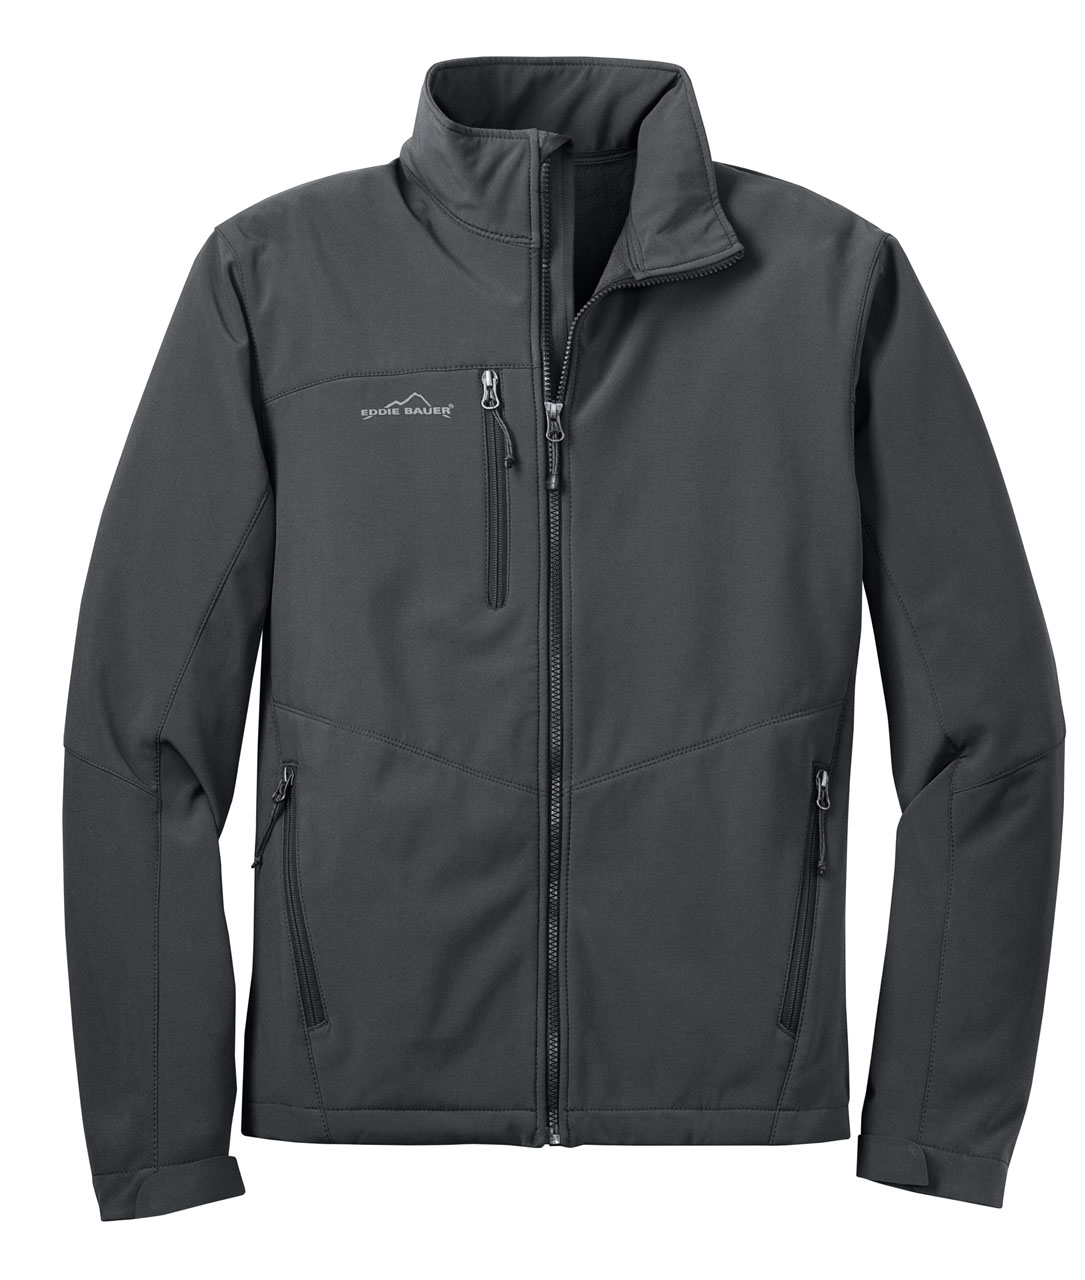 Picture of Eddie Bauer Soft Shell Jacket